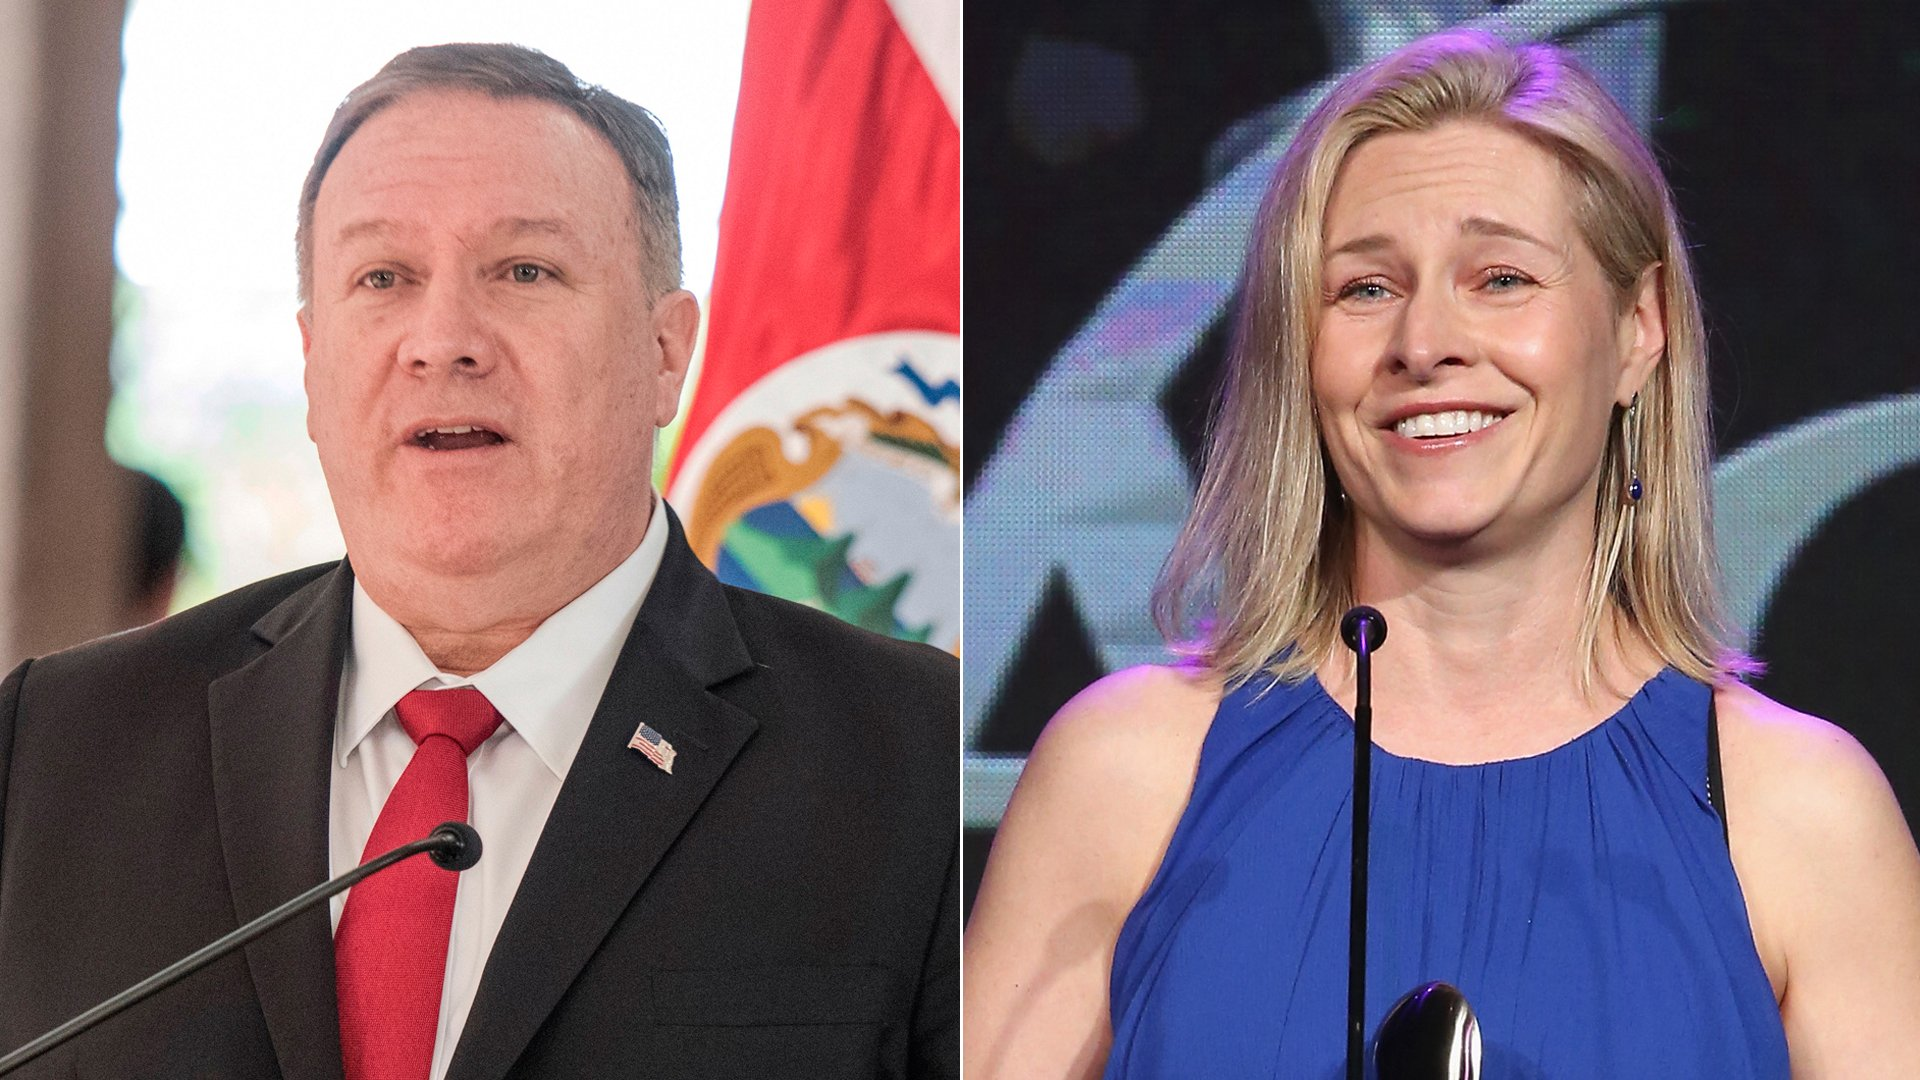 Mike Pompeo, left, speaks during a press conference in San Jose, Puerto Rico on Jan. 21, 2020. Mary Louise Kelly, right, speaks at the Gracie Awards at the Beverly Wilshire Four Seasons Hotel on May 22, 2018. (Credit: EZEQUIEL BECERRA/AFP via Getty Images; Jesse Grant/Getty Images for Alliance for Women in Media)